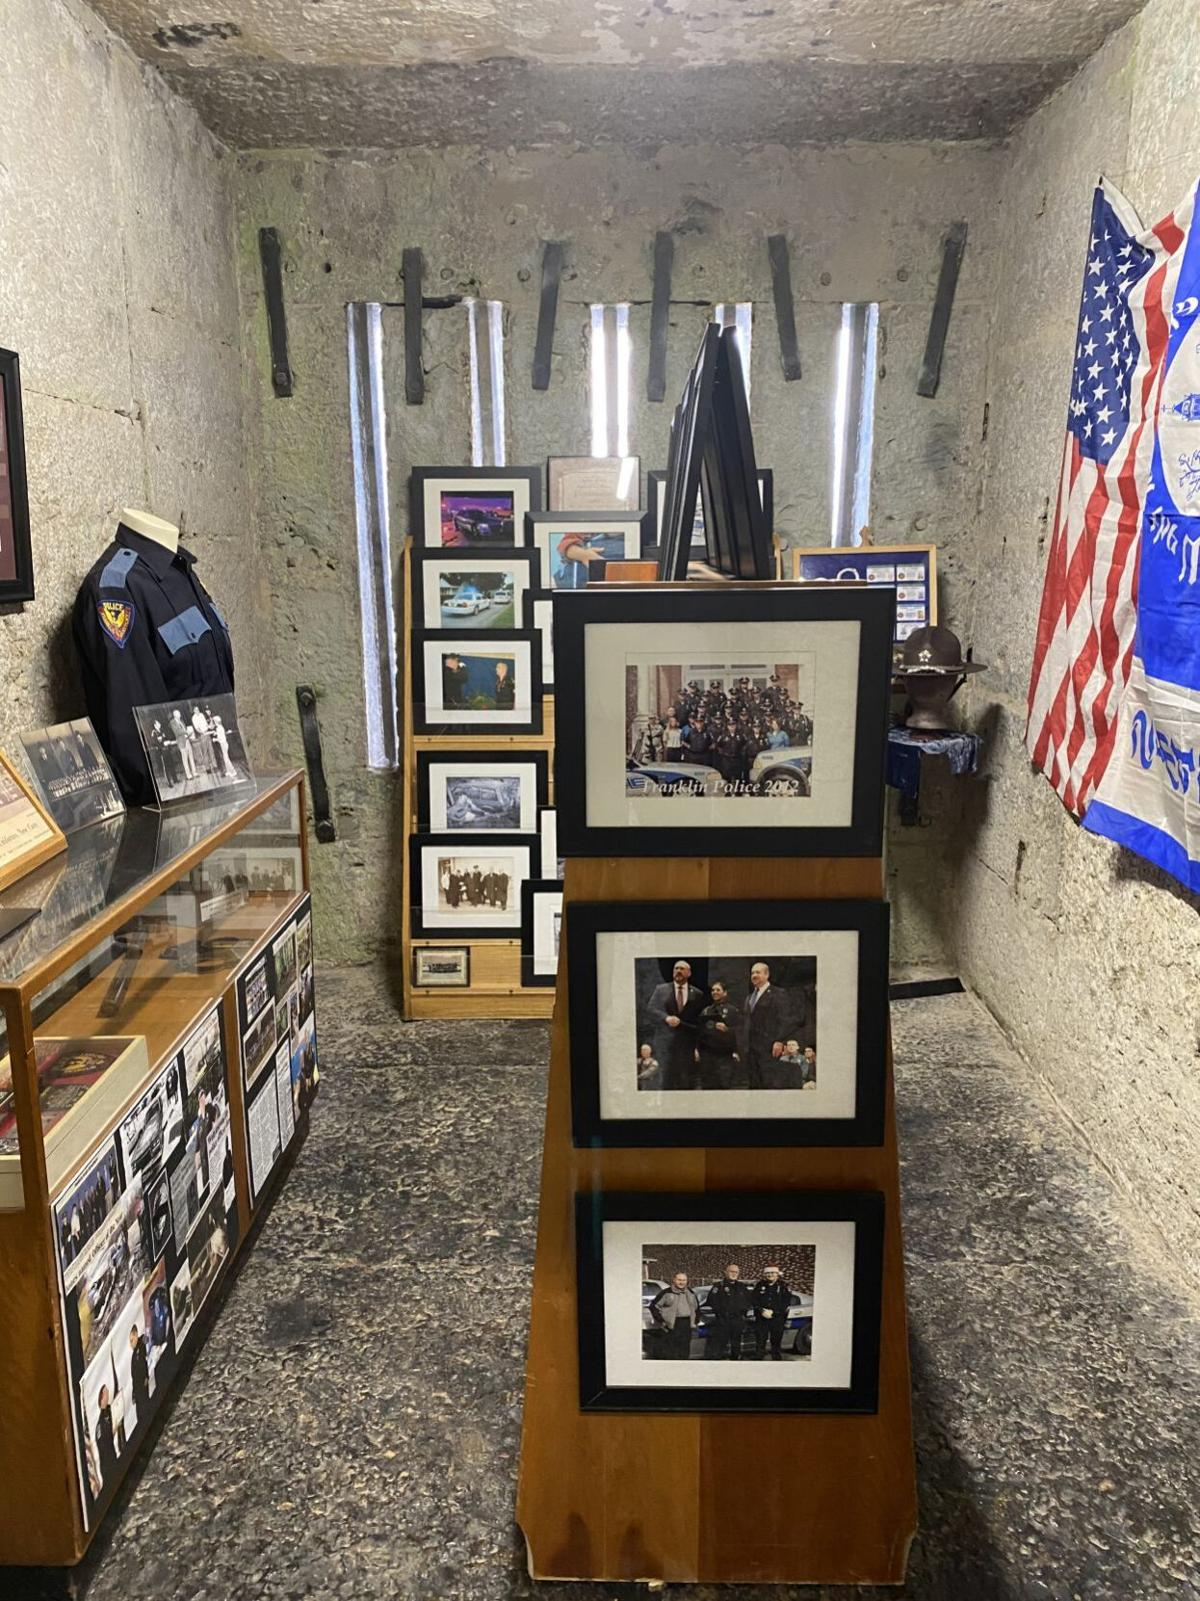 Exhibit honoring law enforcement on display at old jail